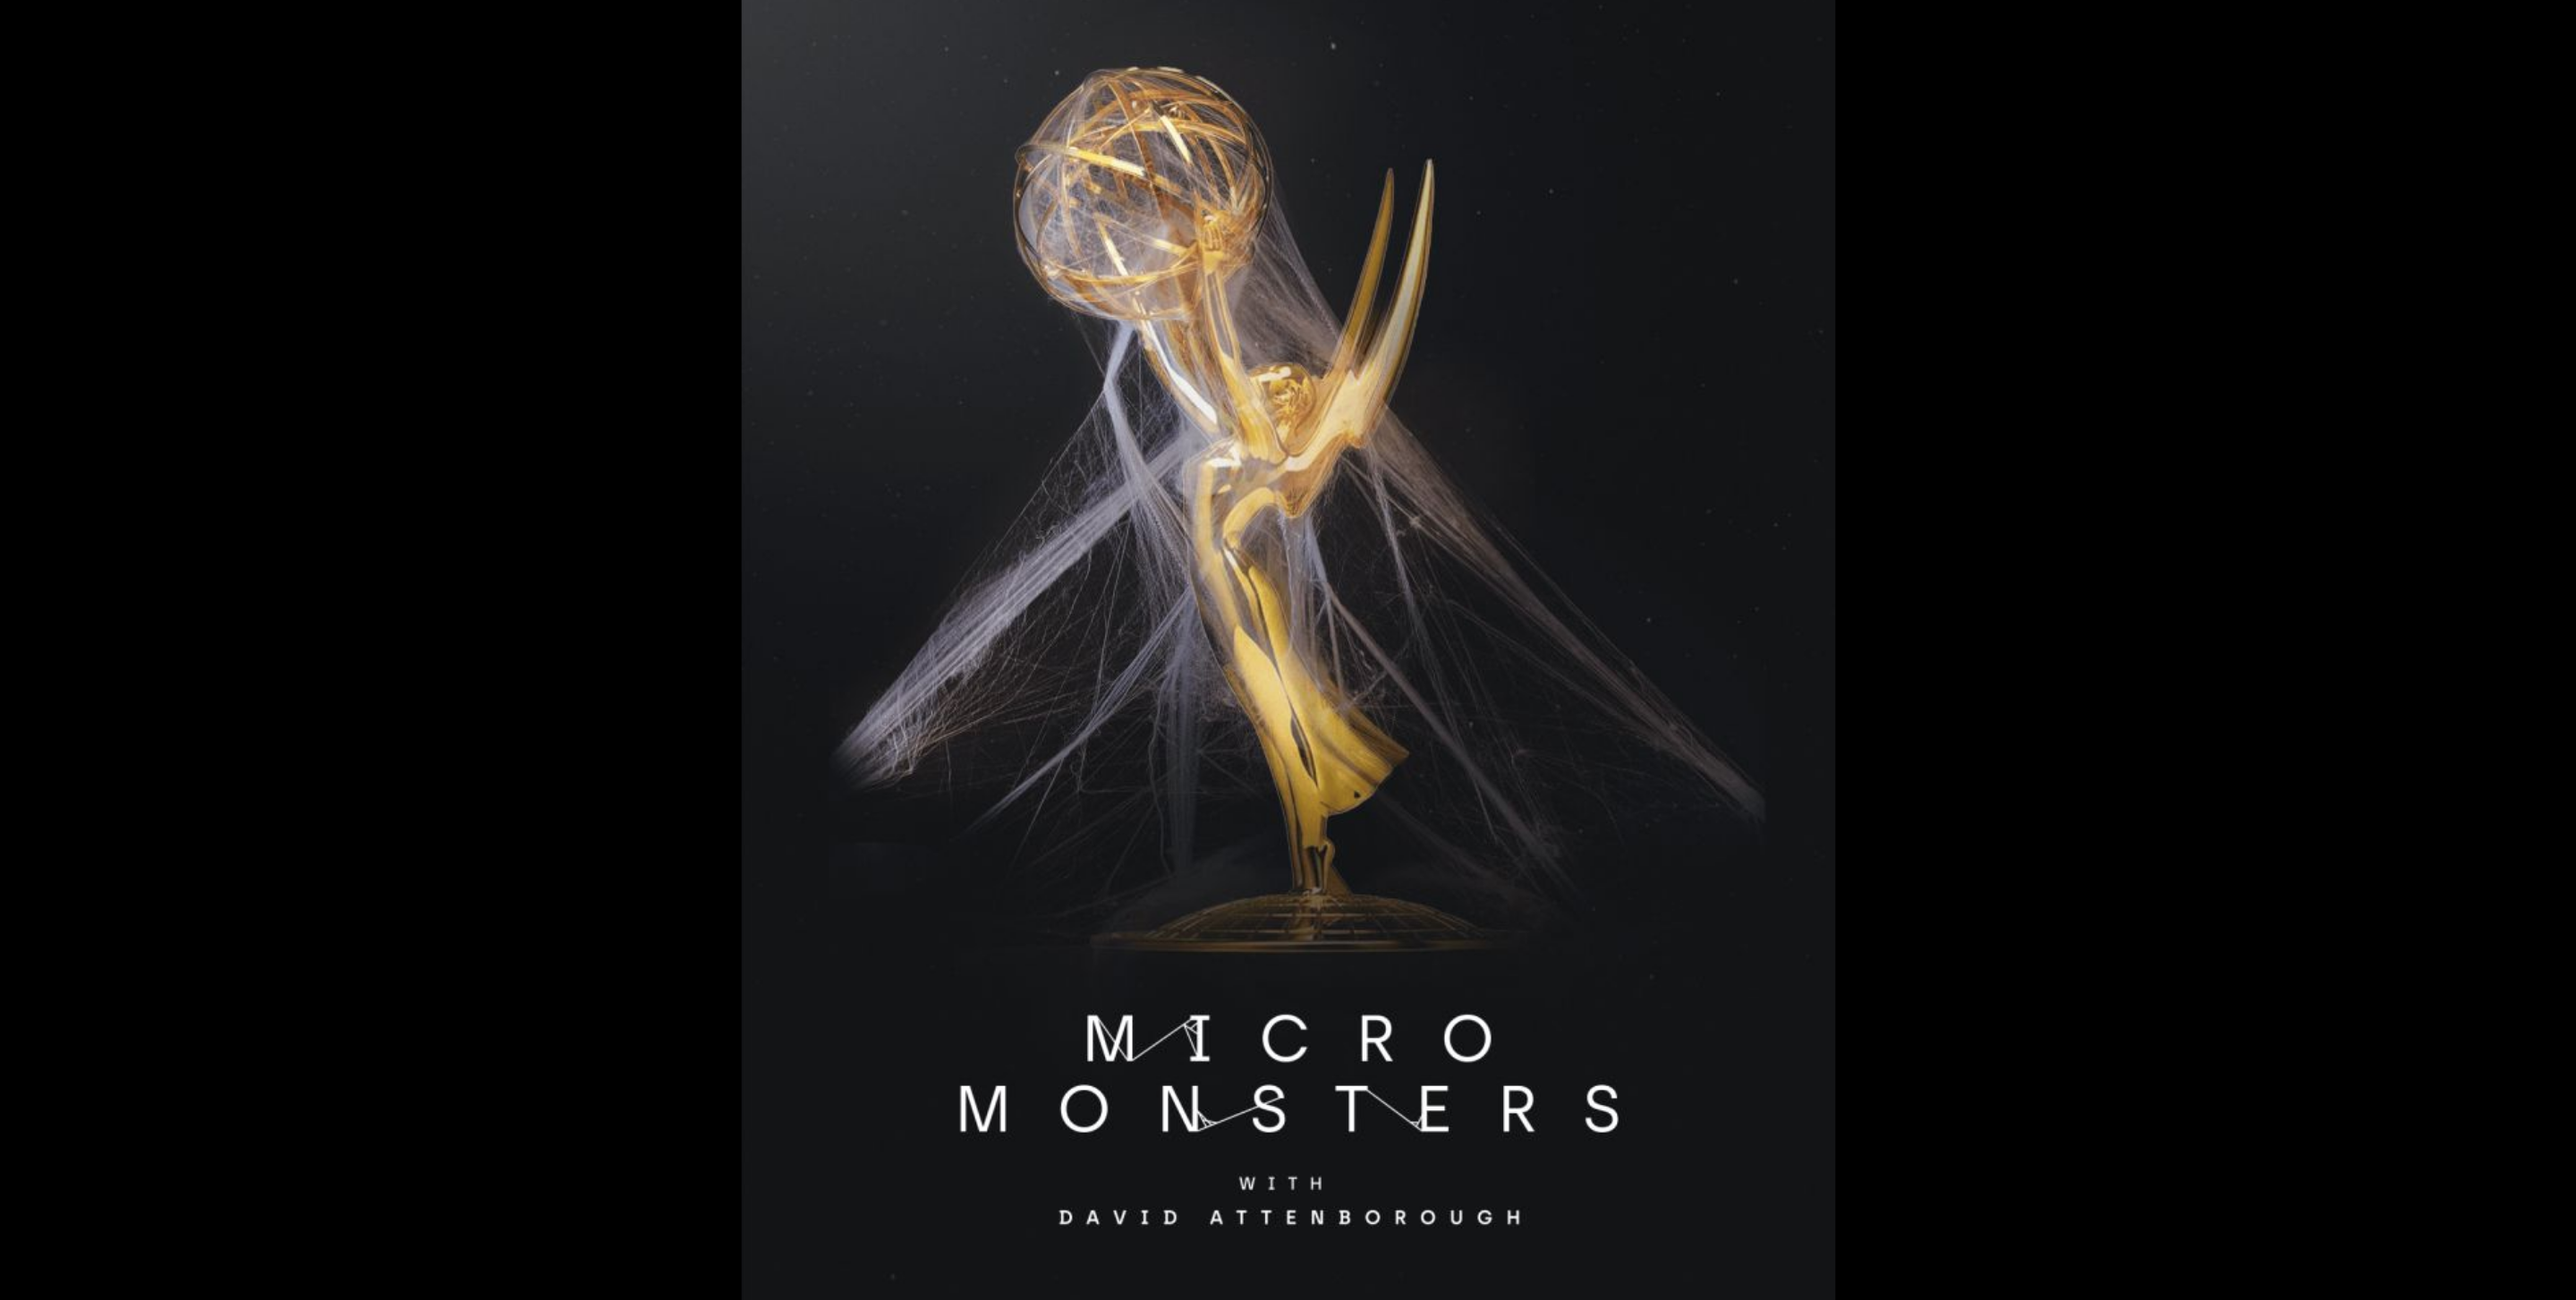 Double Emmy Awards nomination for Micro Monsters with David Attenborough